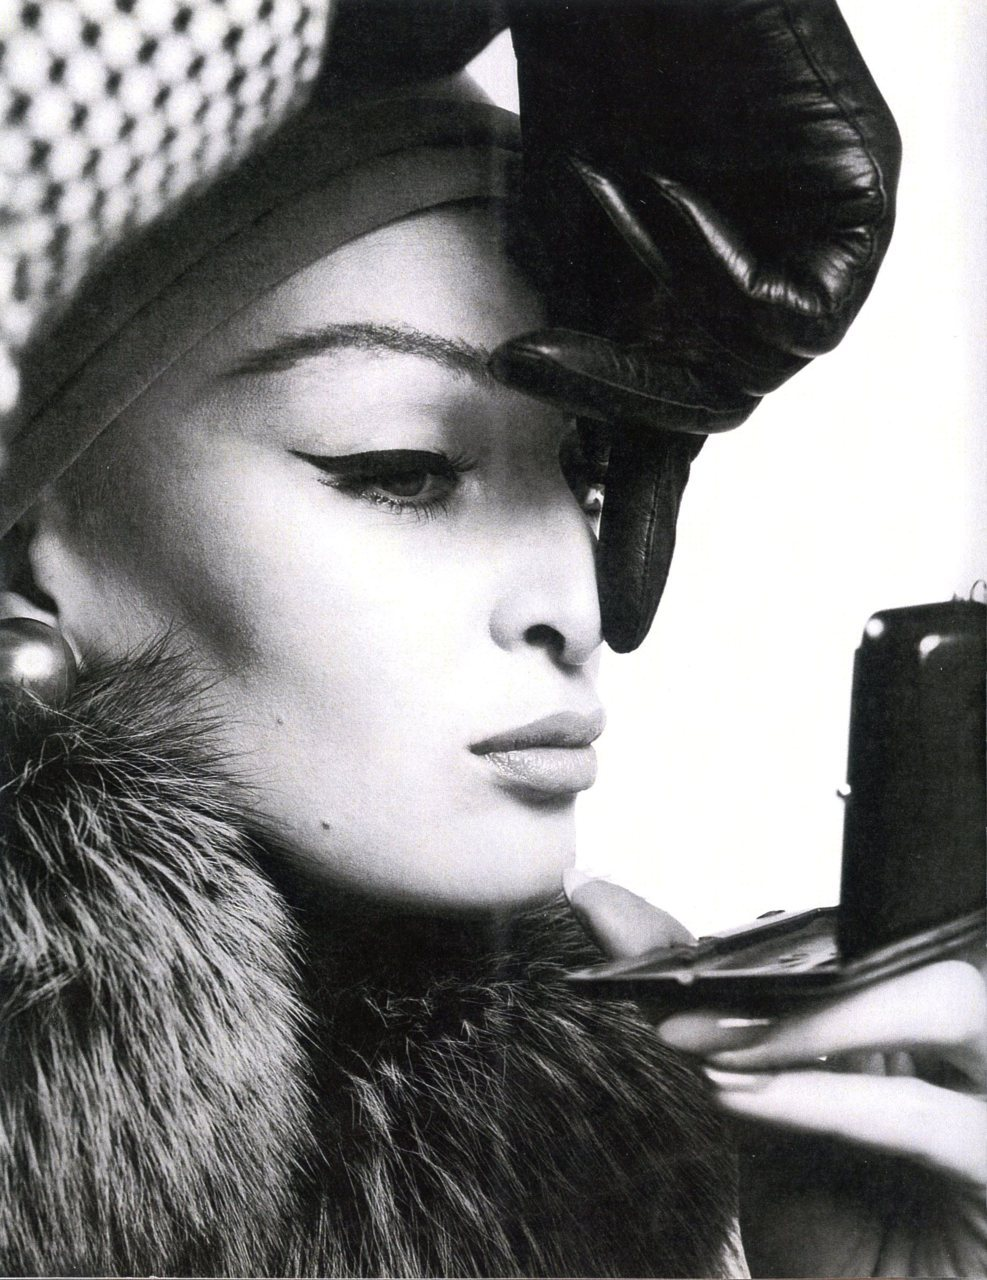 liquid liner & leather gloves, what more does one need? (Avedon, 1962)